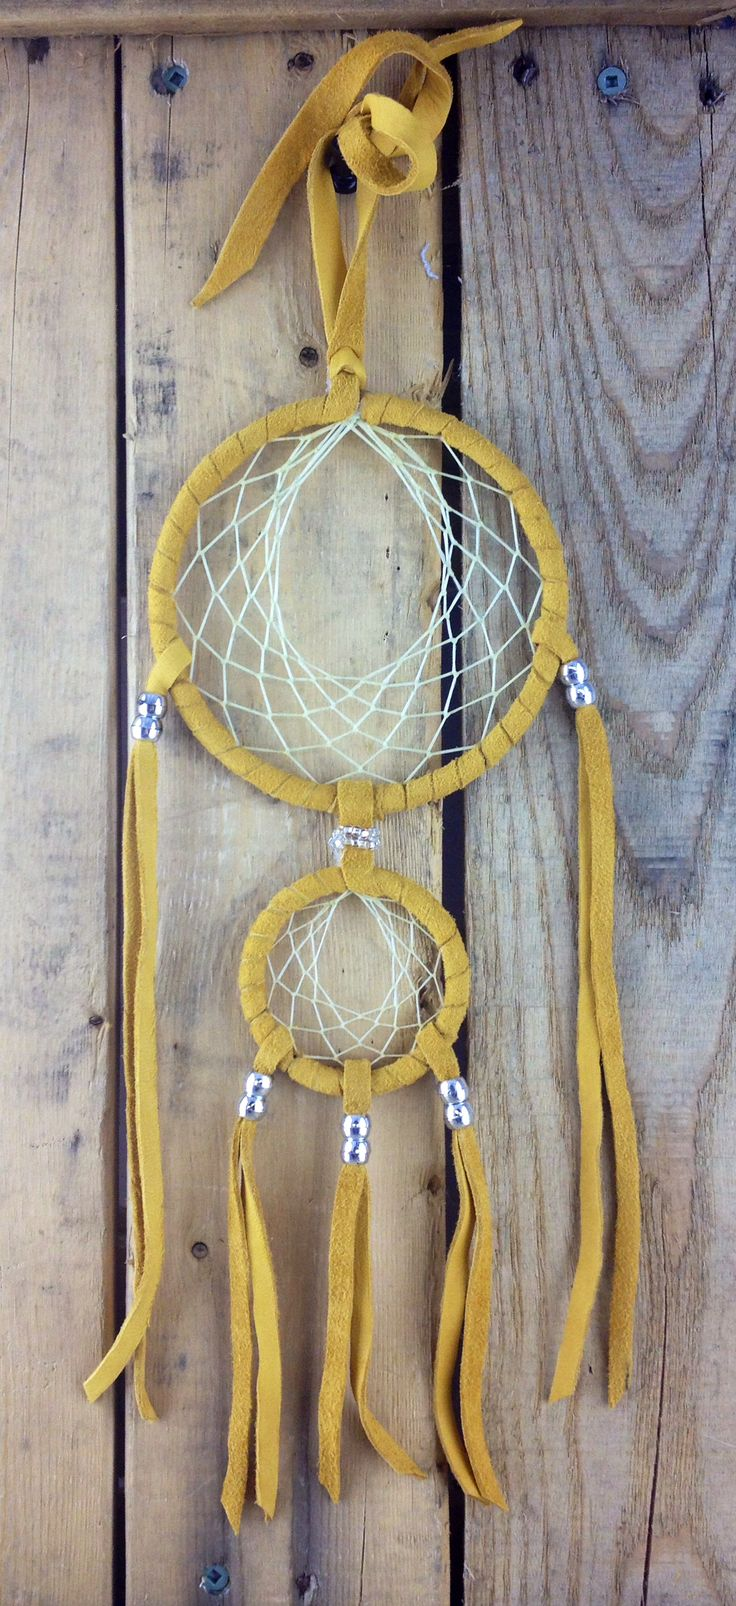 The weaving of dreamcatchers is a sacred and fascinating art that many Native American tribes take part in. They can be used to help you with dream work and also are a wonderful decór item for your home or office. In High Level, we are so fortunate to have our talented Aboriginal artists of Beaver, Cree, Dene and Métis descent. #Esawa #DreamCatcher #Handmade #Local